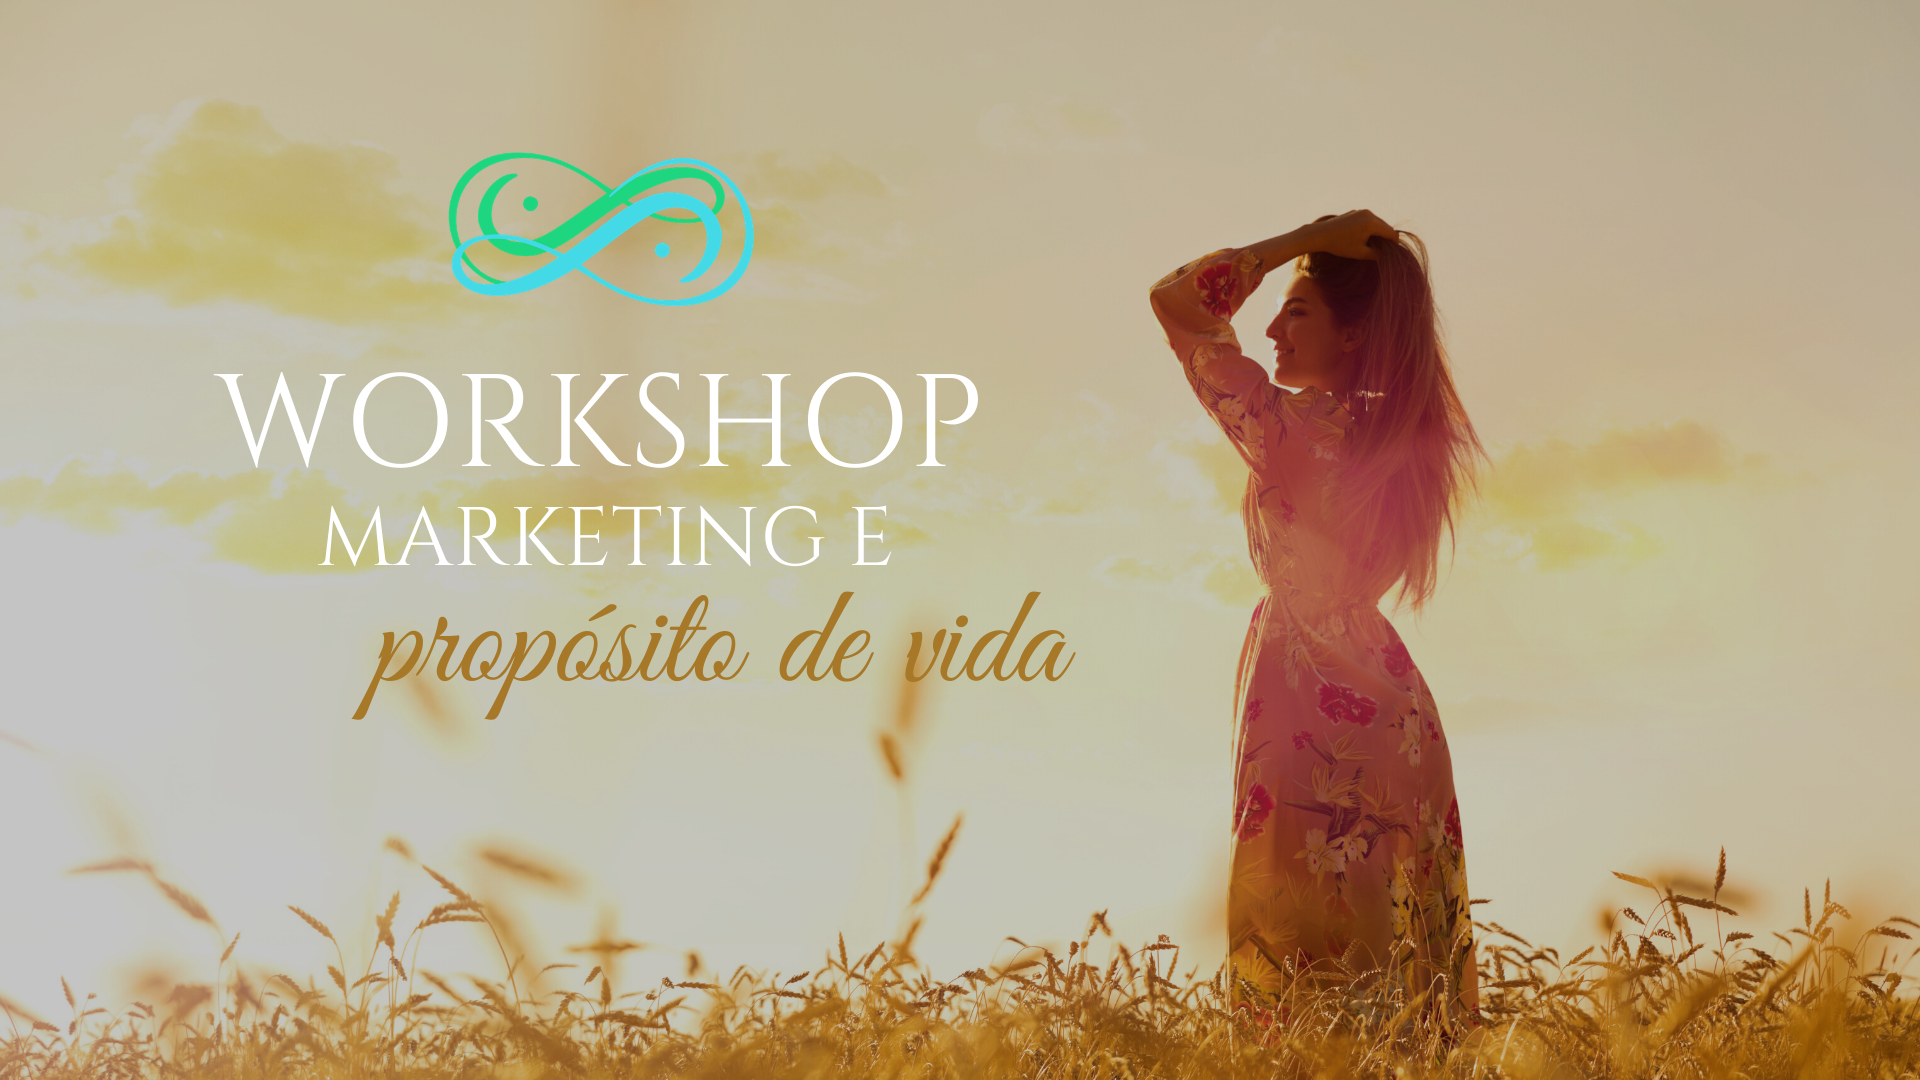 Workshop Marketing e propósito da vida